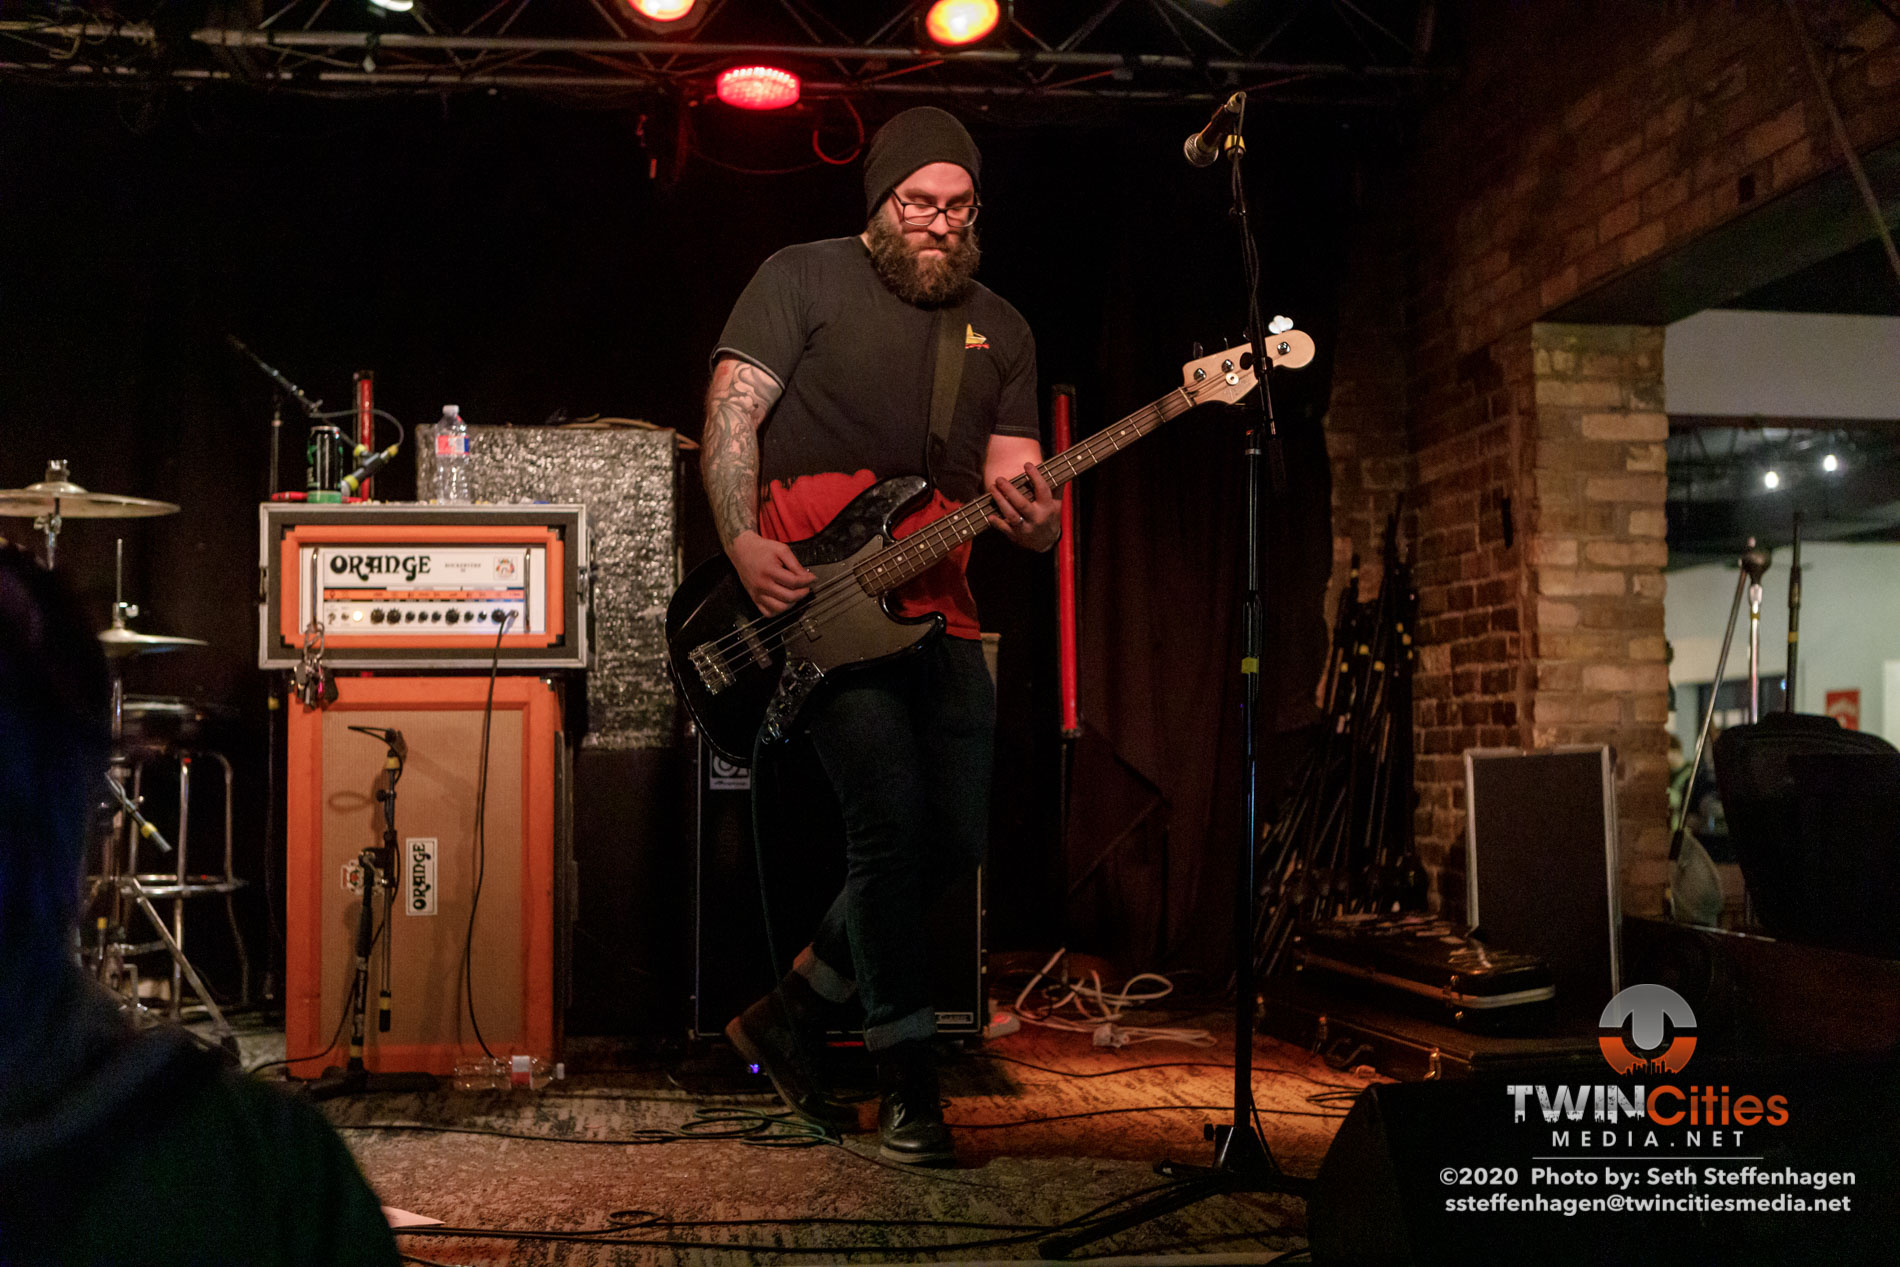 March 1, 2020 - Minneapolis, Minnesota, United States - Cities Never Sleep live in concert at Whiskey Junction opening for Coyote Kid.  (Photo by Seth Steffenhagen/Steffenhagen Photography)